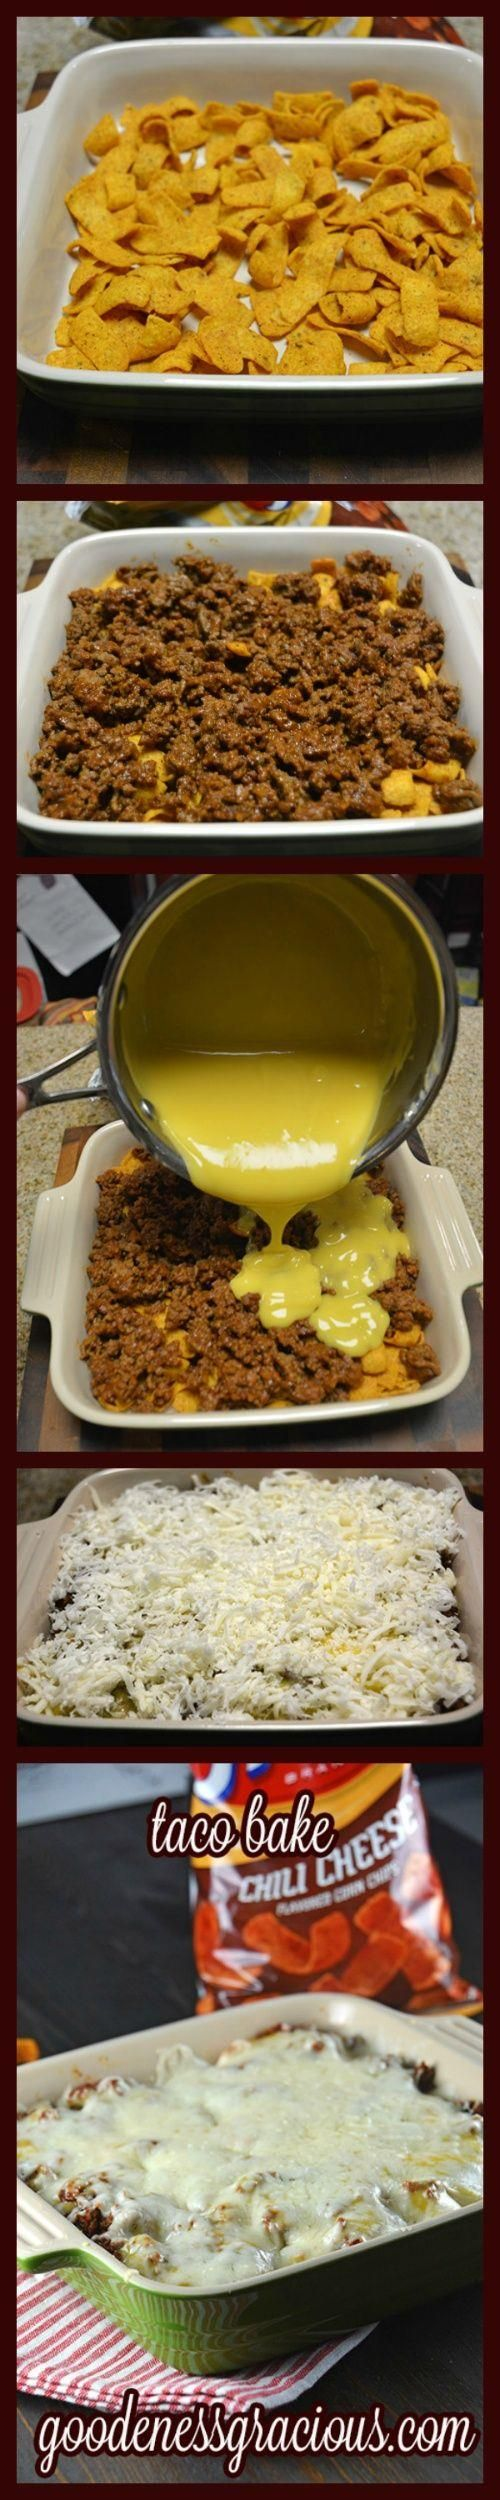 Family Favorite Taco Bake!